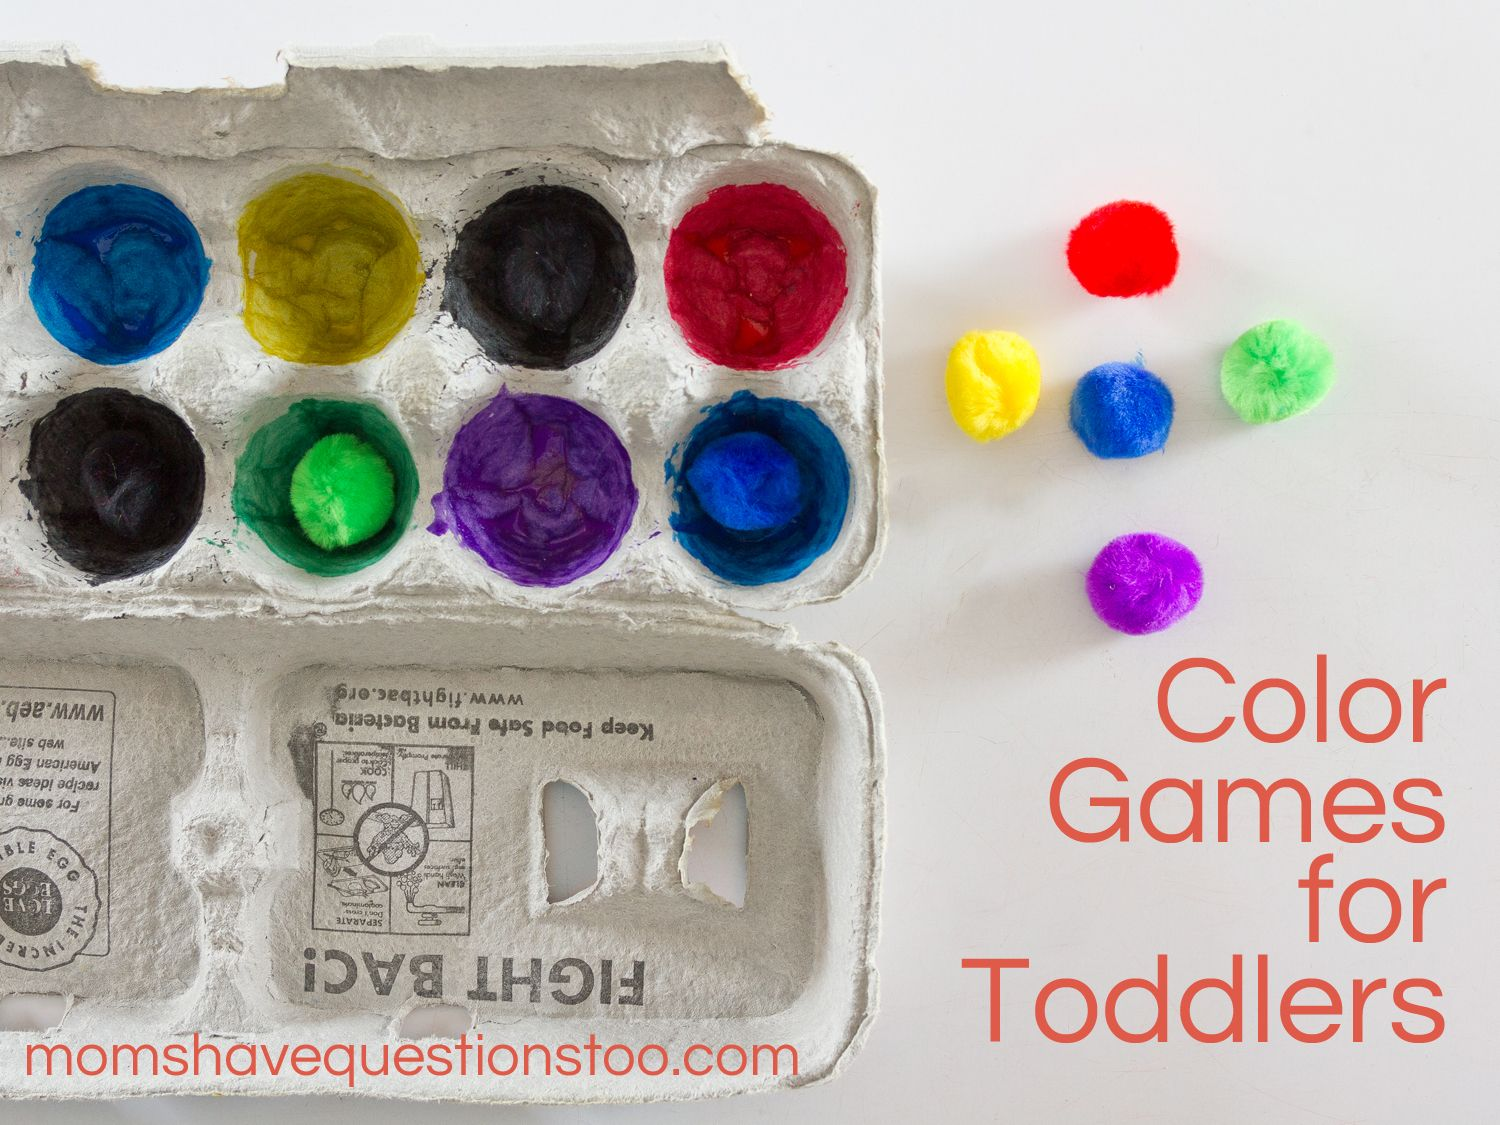 Toddler color learning games - Find This Pin And More On Toddler Activities Color Games